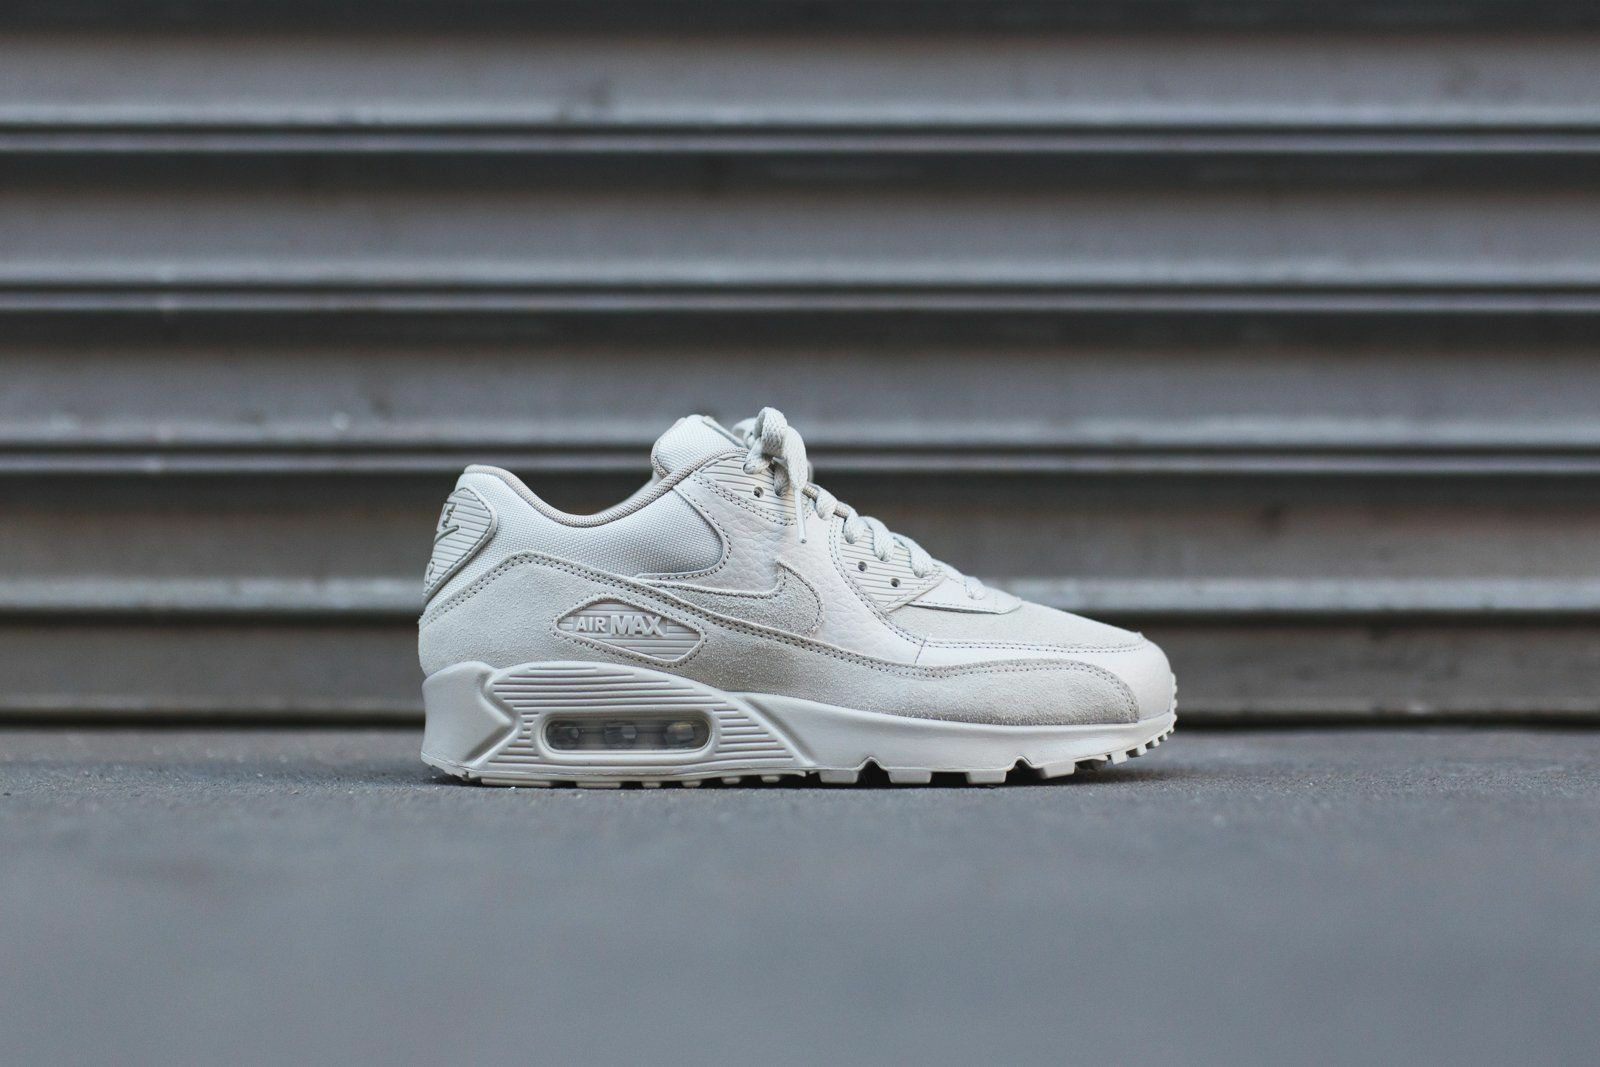 Nike Air Max 90 Premium light bone/string  700155-013 Mens Sz 7